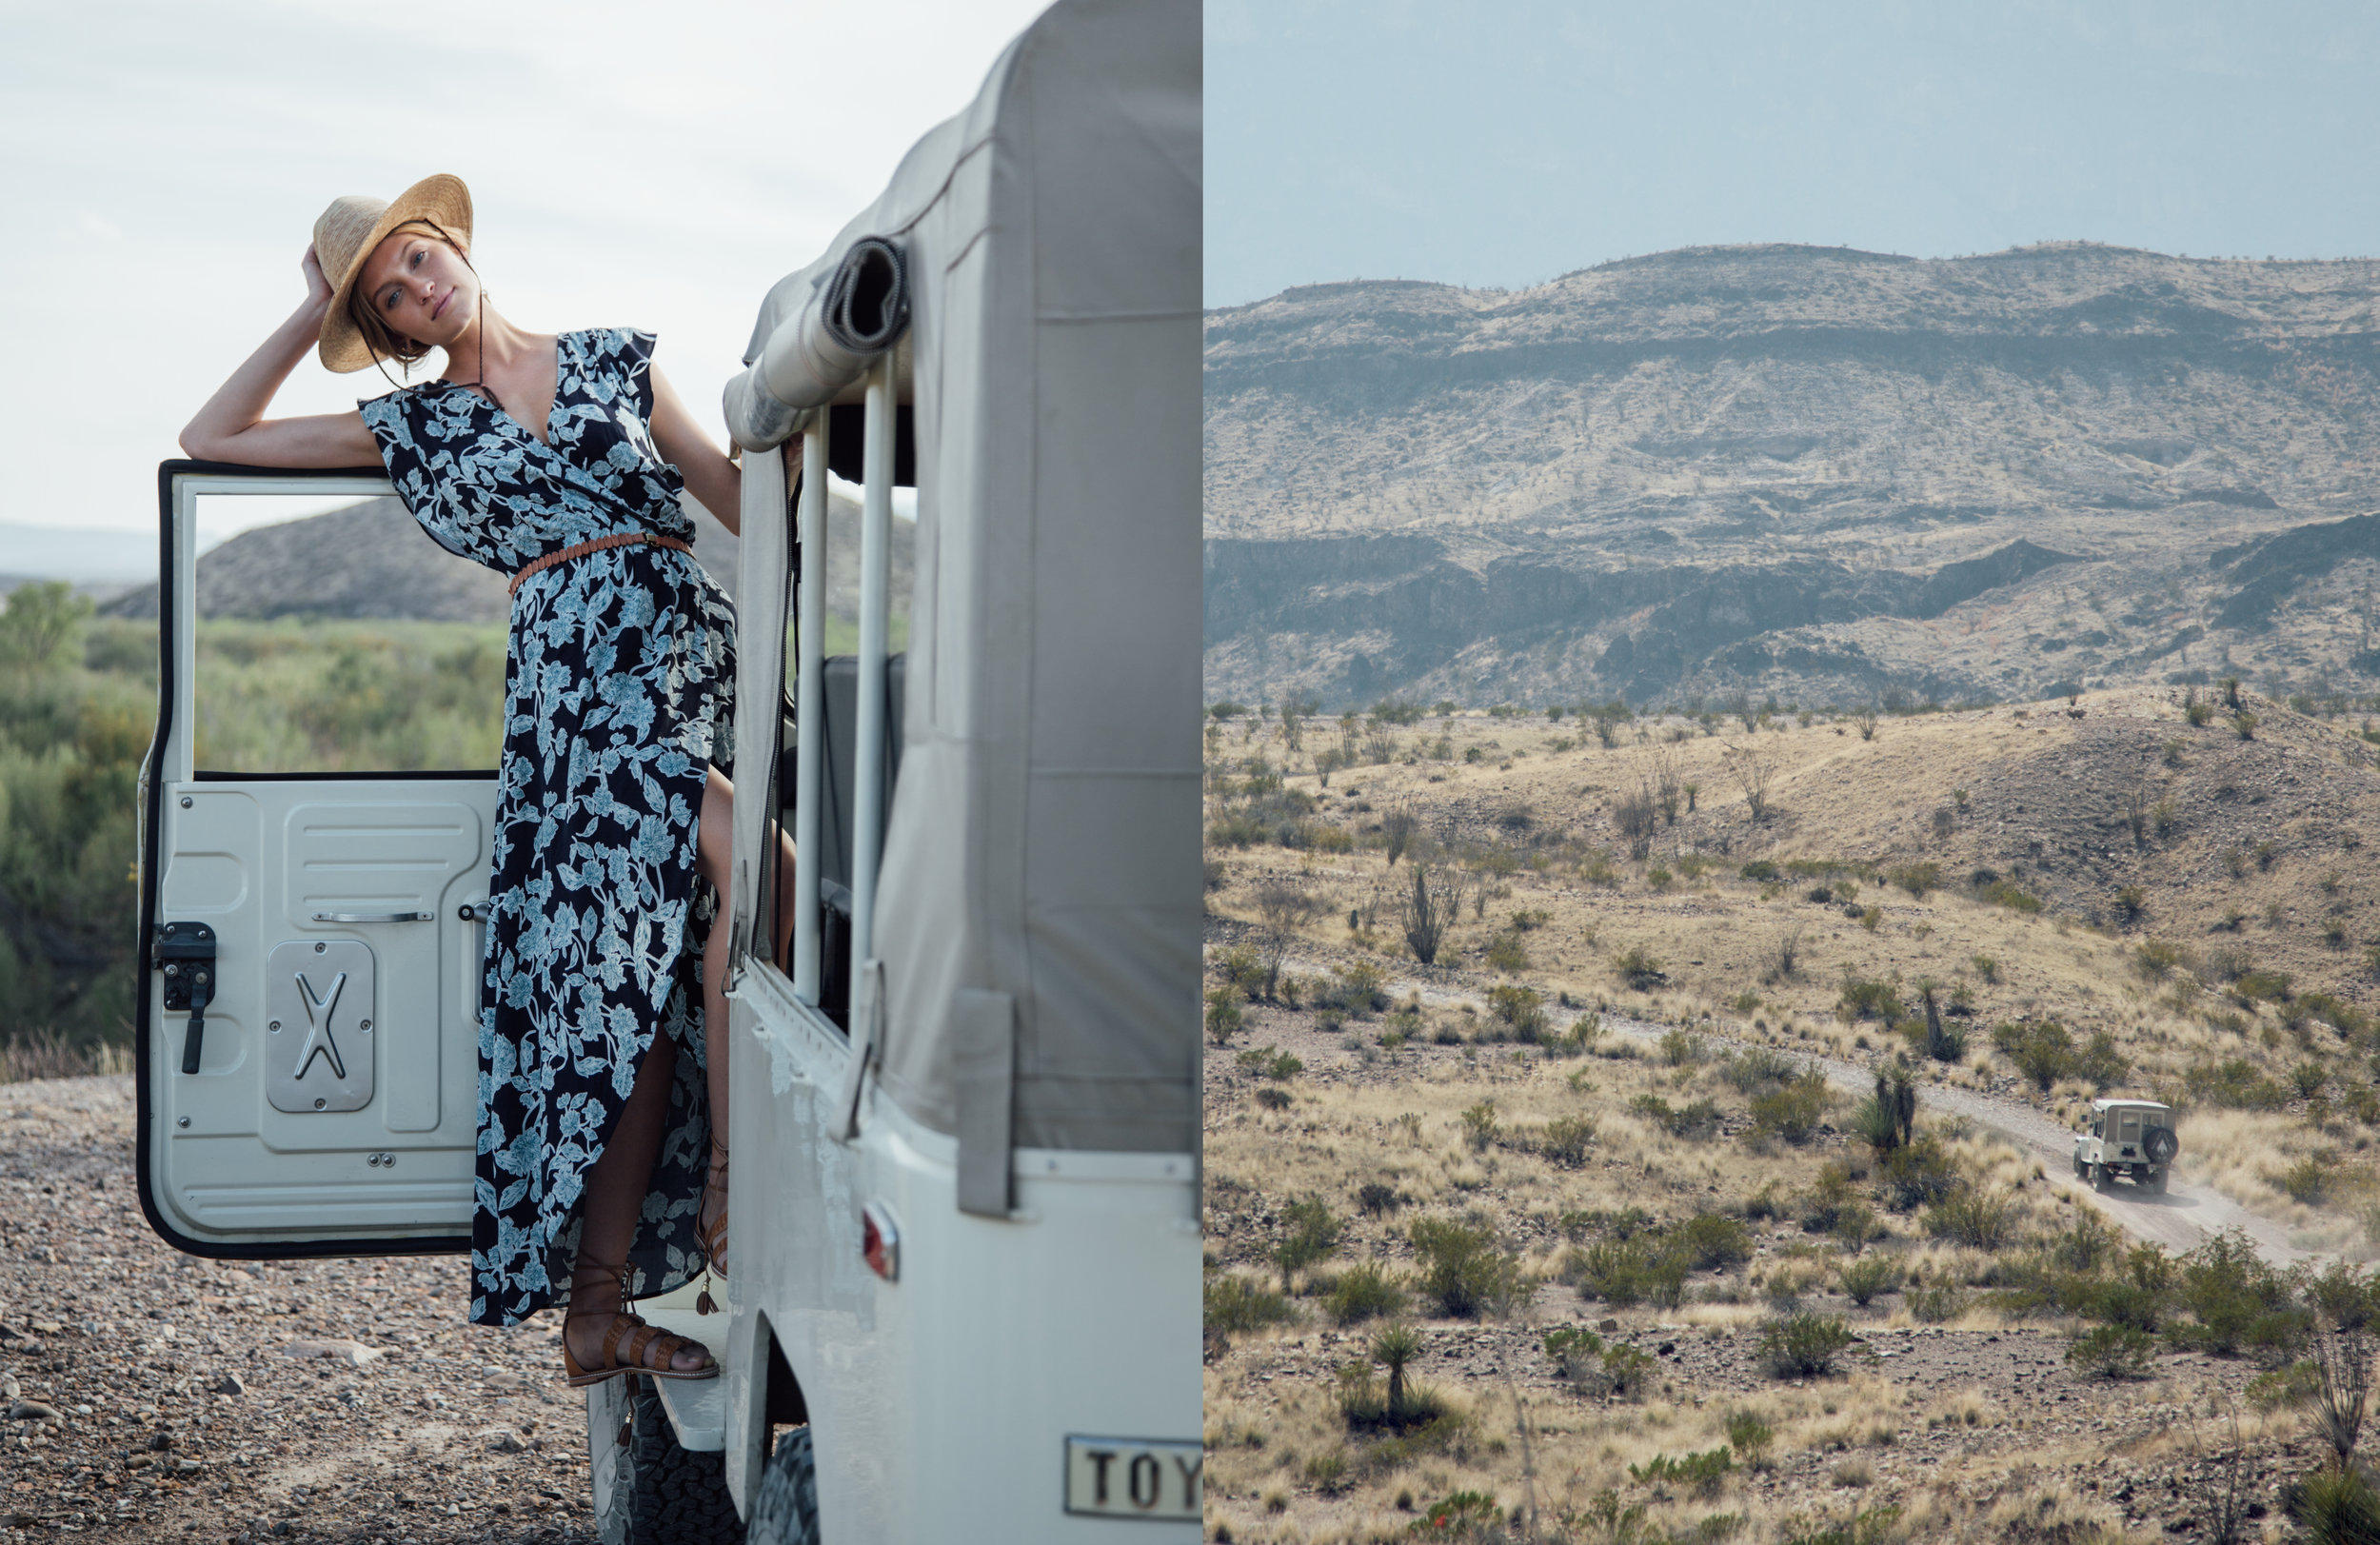 Photo: Sinuhe Xavier; Hair/MUA: Lillian Fogel; Shot on location in Big Bend National Park, TX